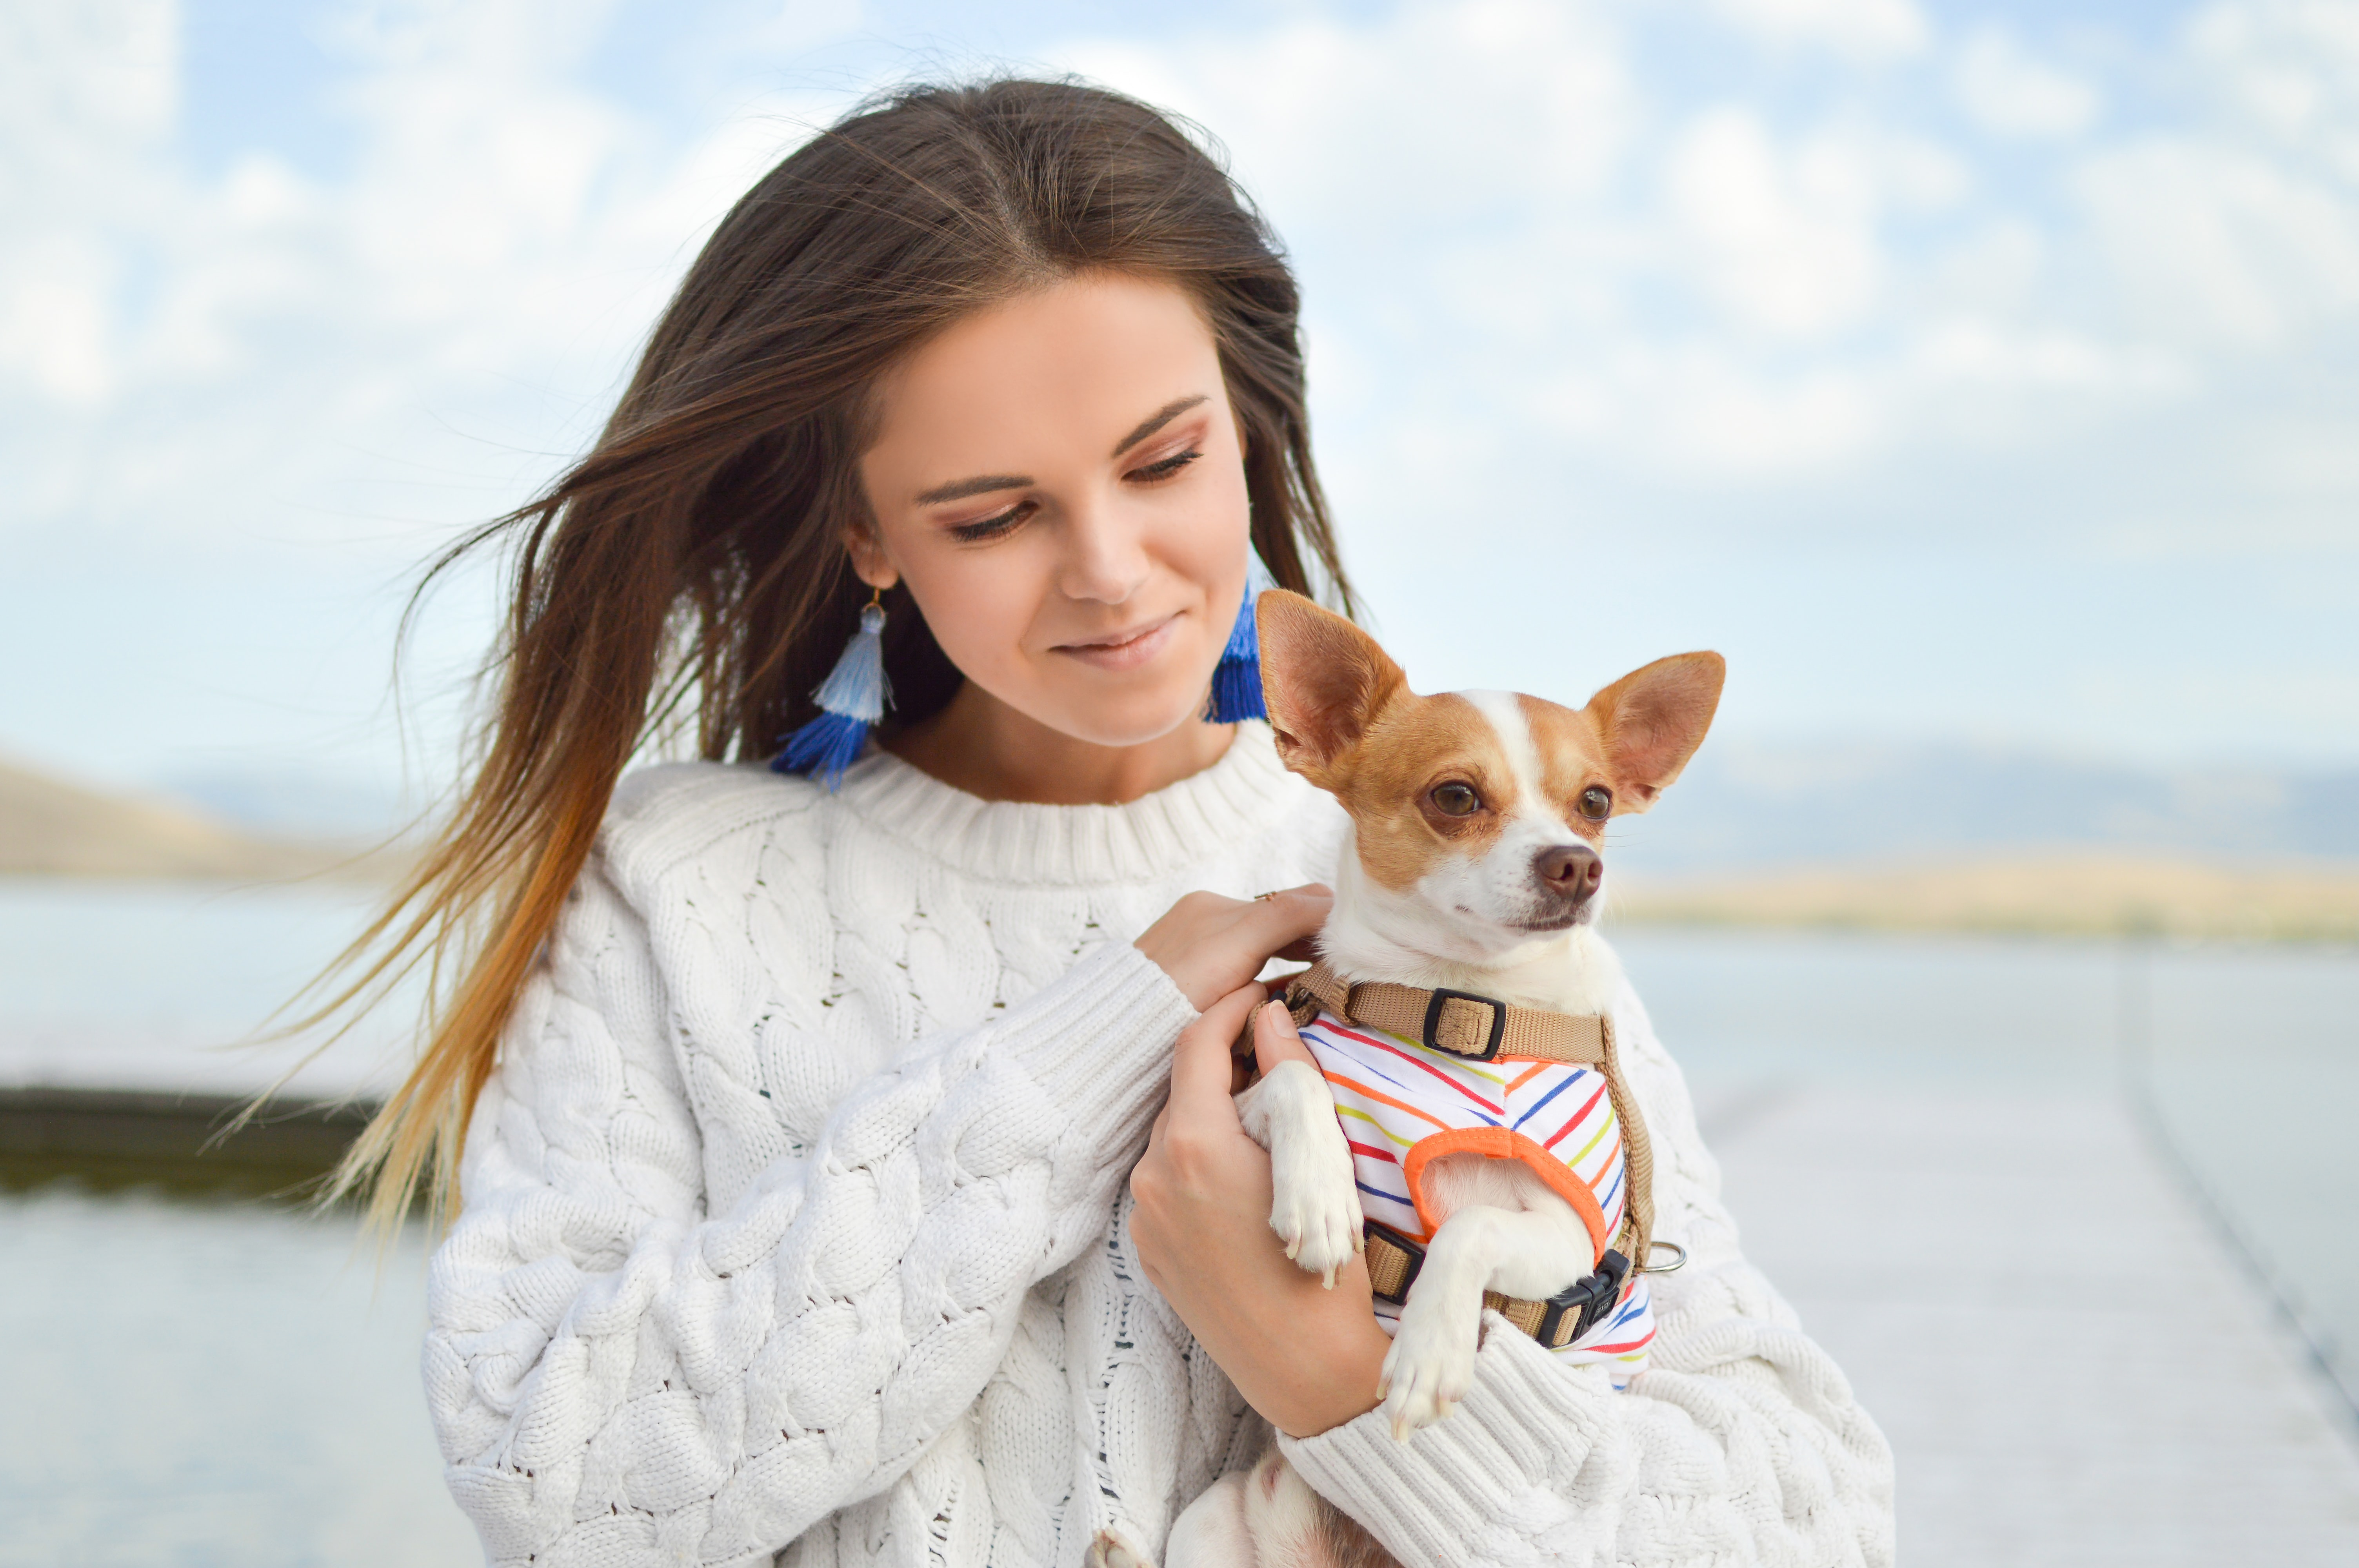 woman carrying dog close up photography